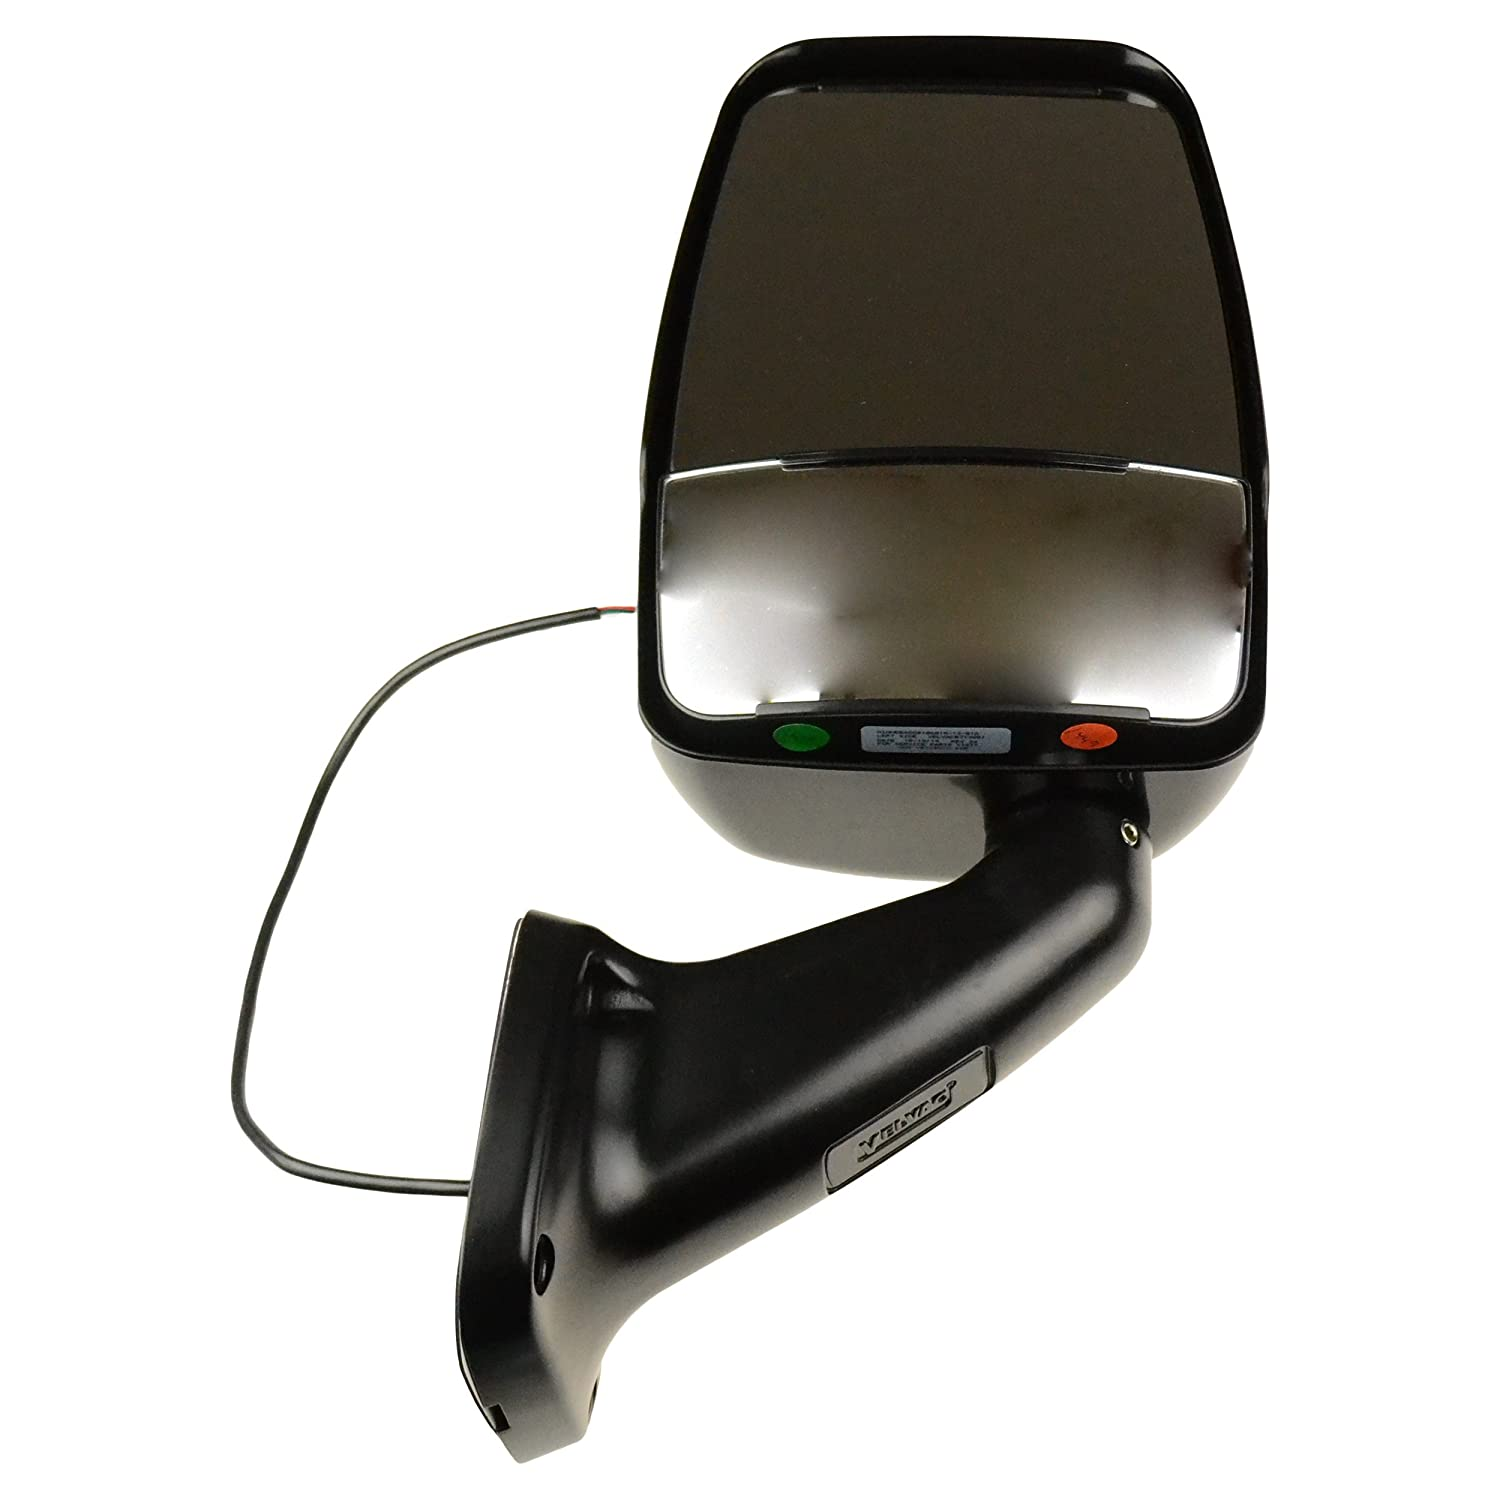 velvac 713802 heat remote mirror velvac rv mirrors deluxe manual mirror assembly for 96